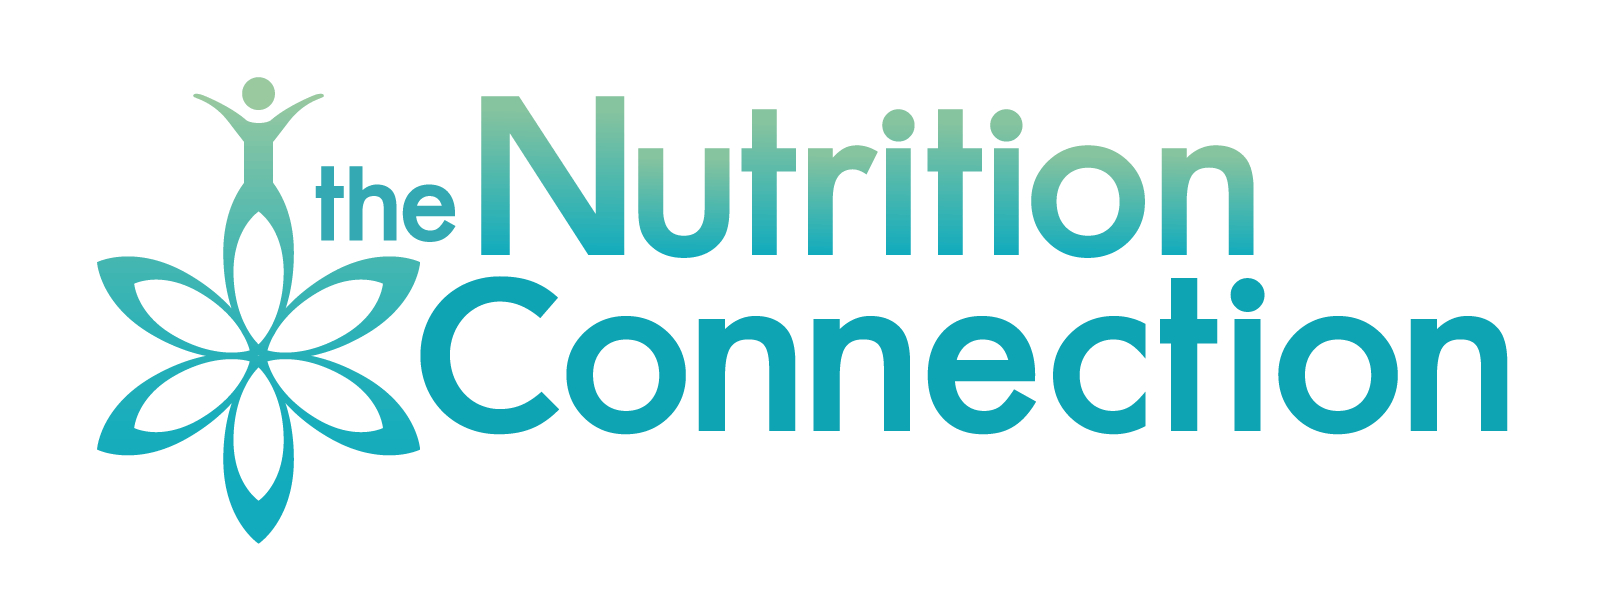 Raleigh, NC - Nutrition Consulting and Diet Analysis